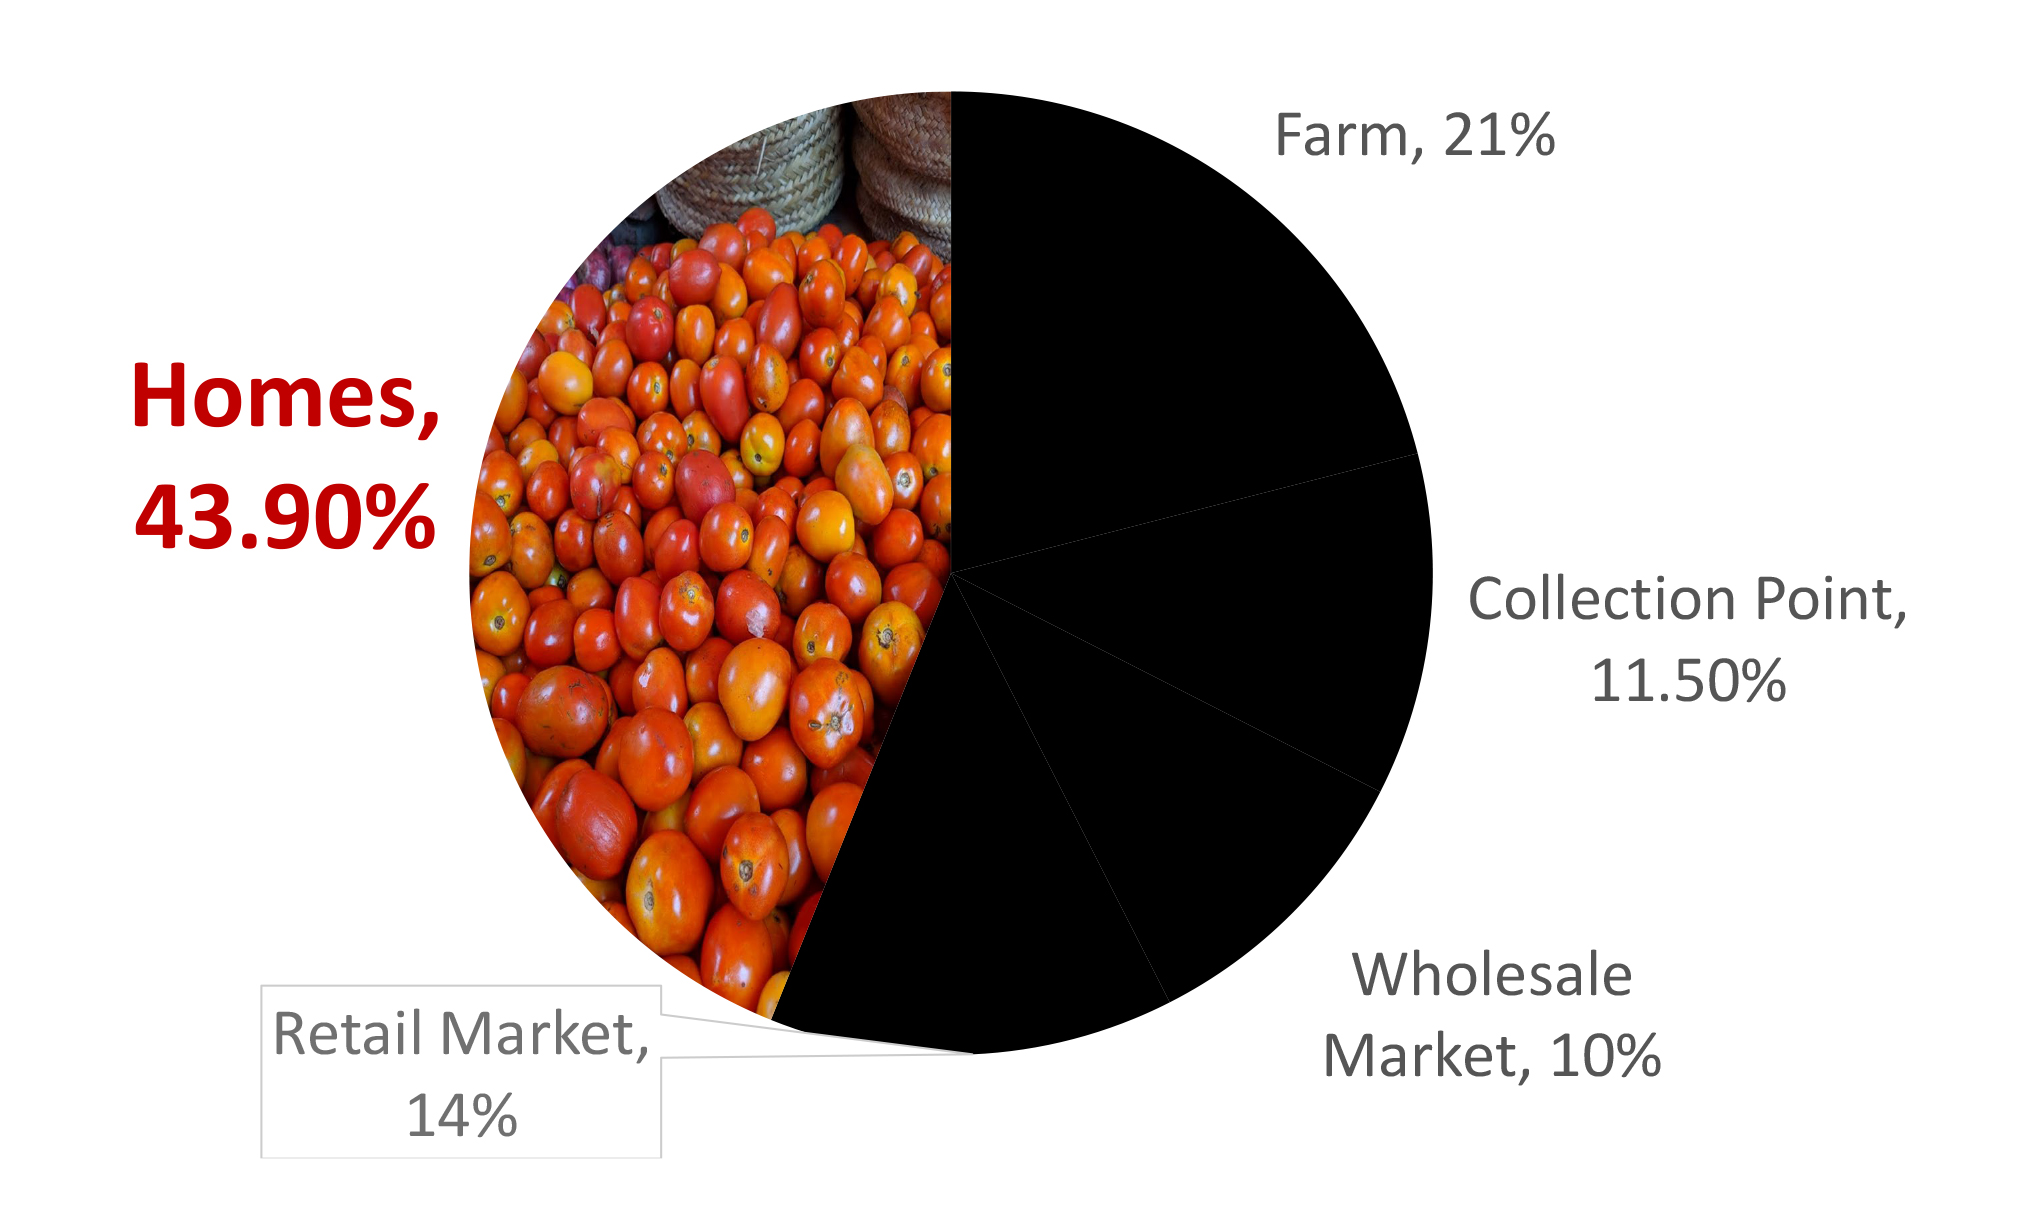 Pie chart showes that 43.9% of tomatoes harvested end up in homes, after 21% are lost on the farm, 11.5% lost at collection points, 10% lost at the wholesale market, and 14% are lost at retail.